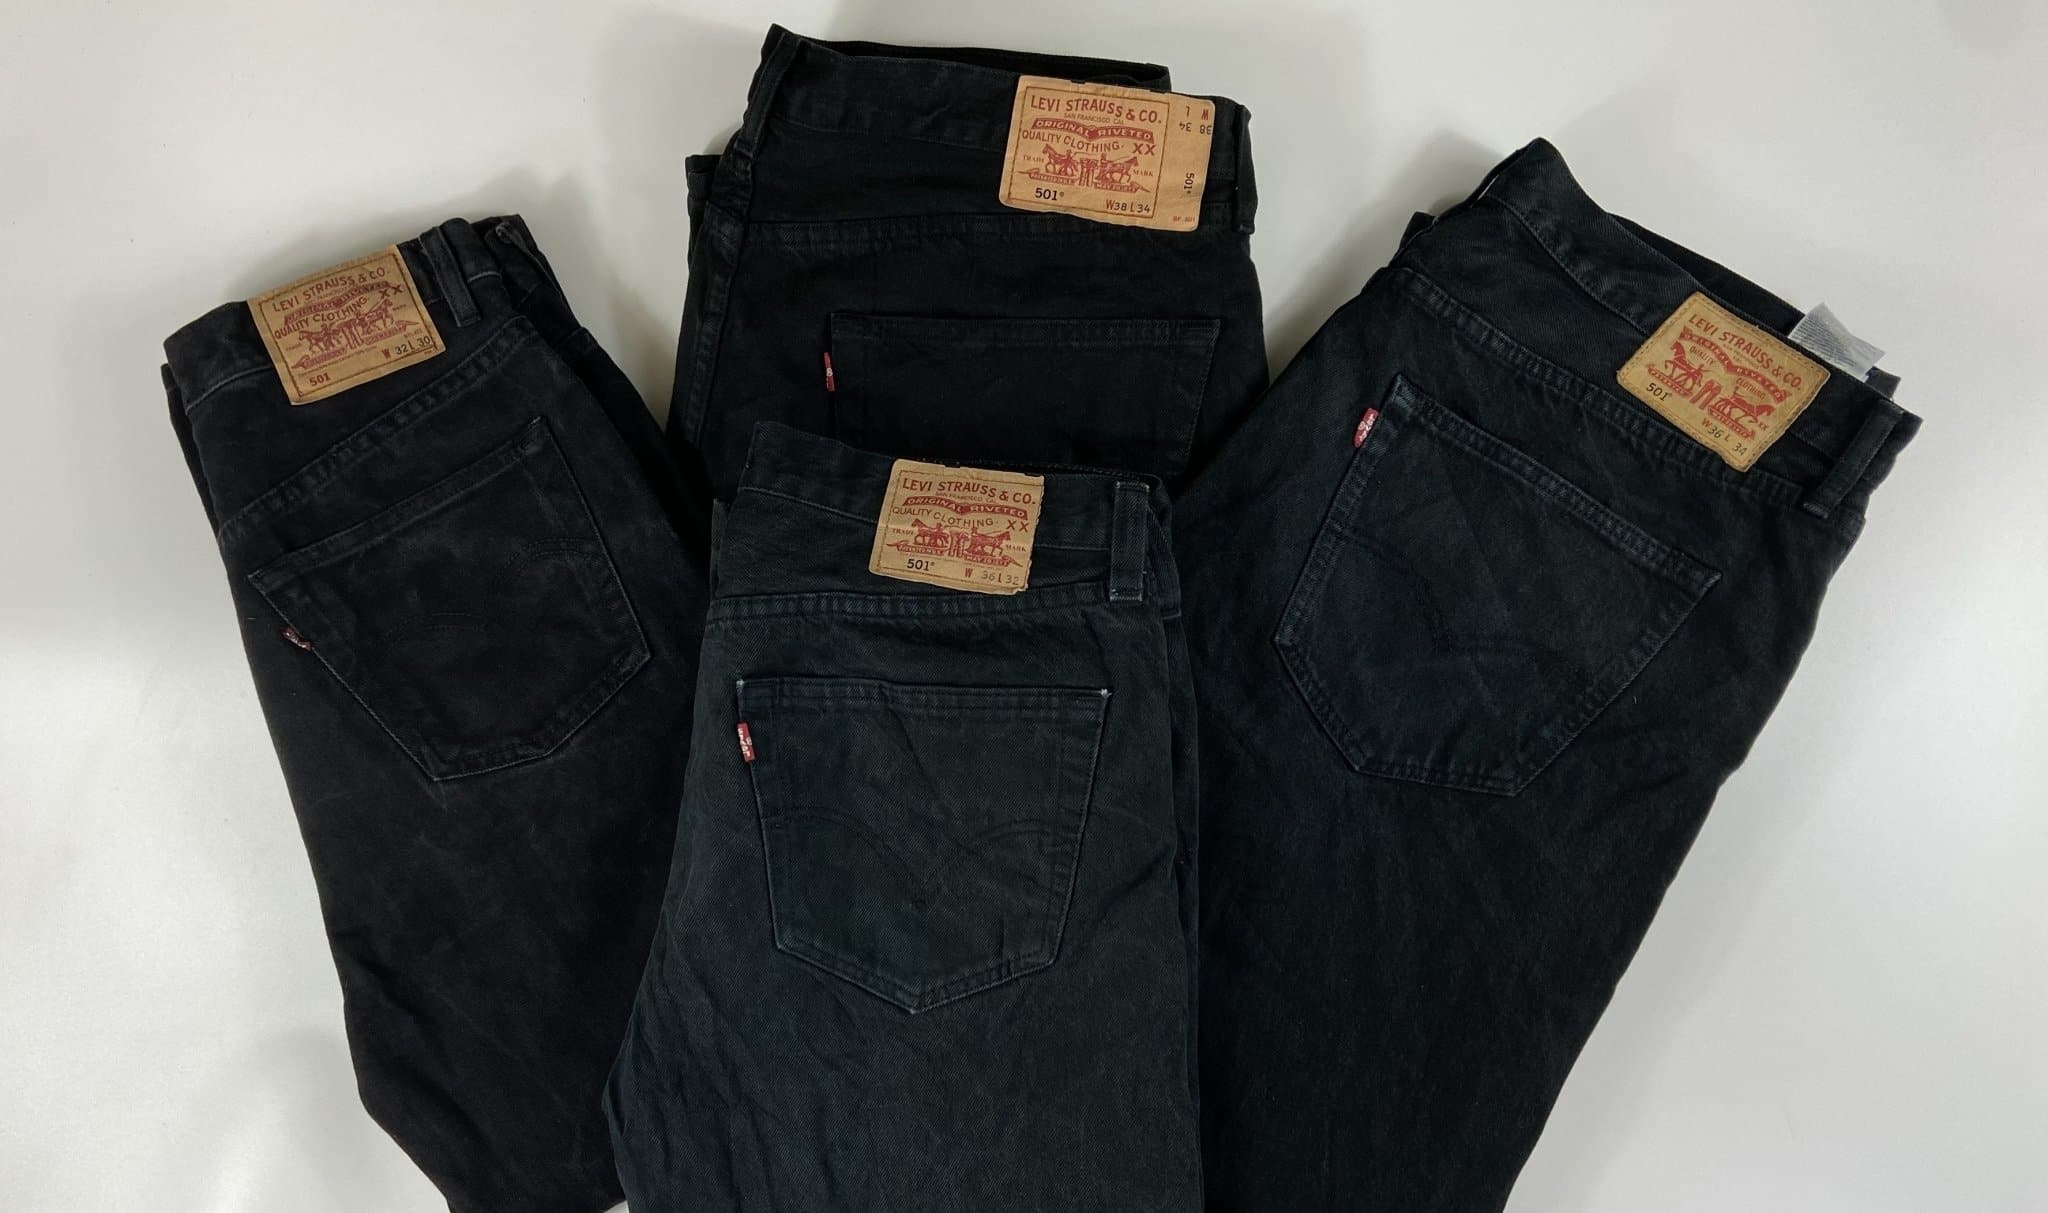 Vintage Levi's Classic 501 Jeans Dark Black/Grey W32 L34 (LVB1) - Discounted Deals UK